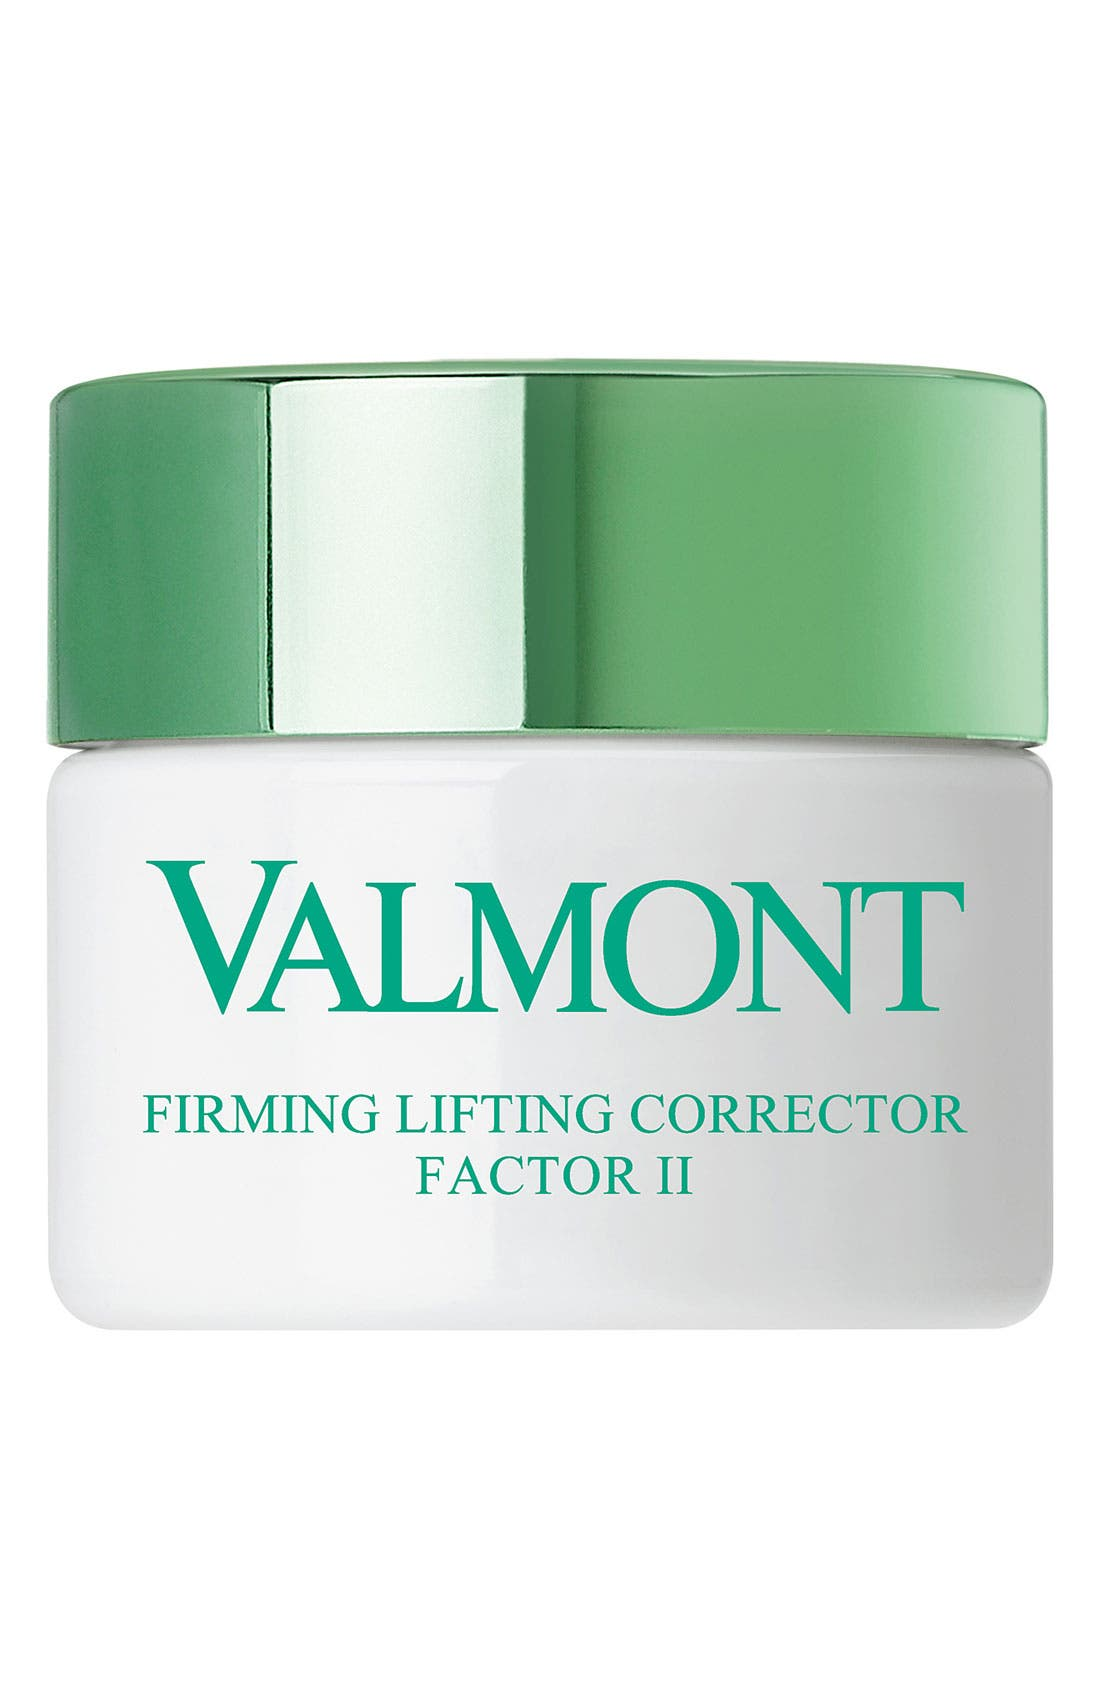 Valmont 'Firming Lifting Corrector Factor II' Treatment